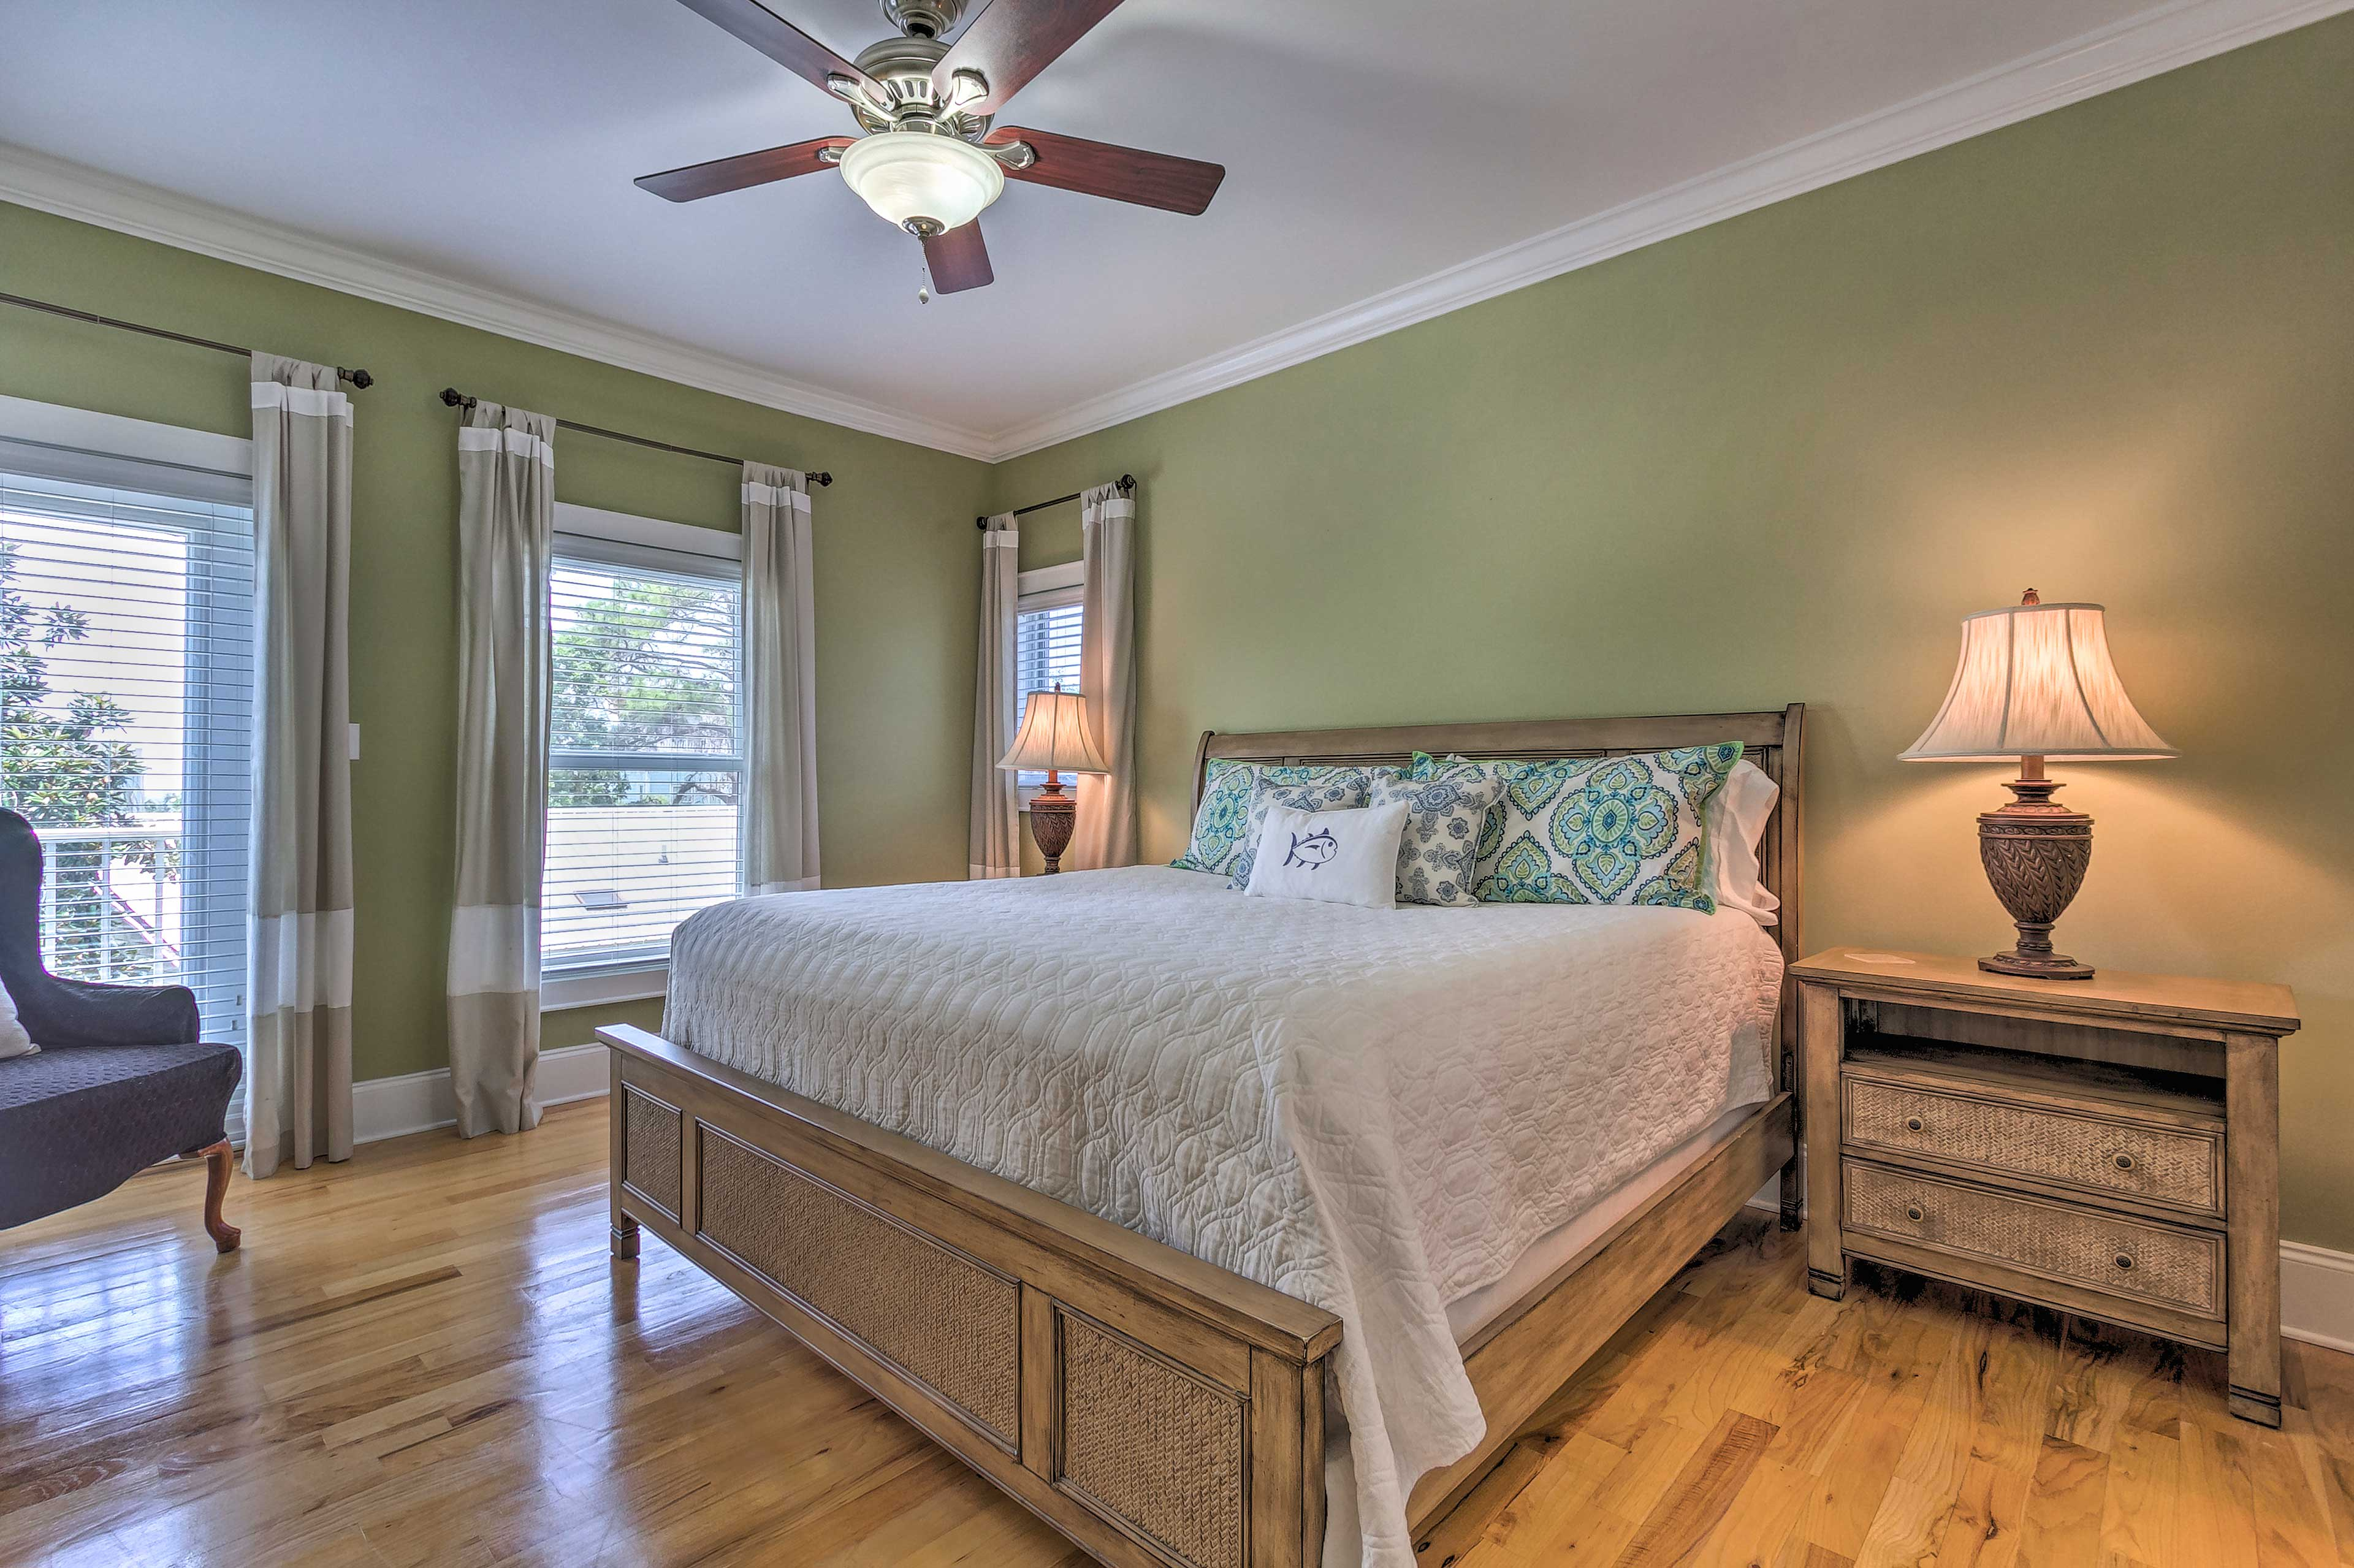 The second bedroom has a king bed for 2 guests.